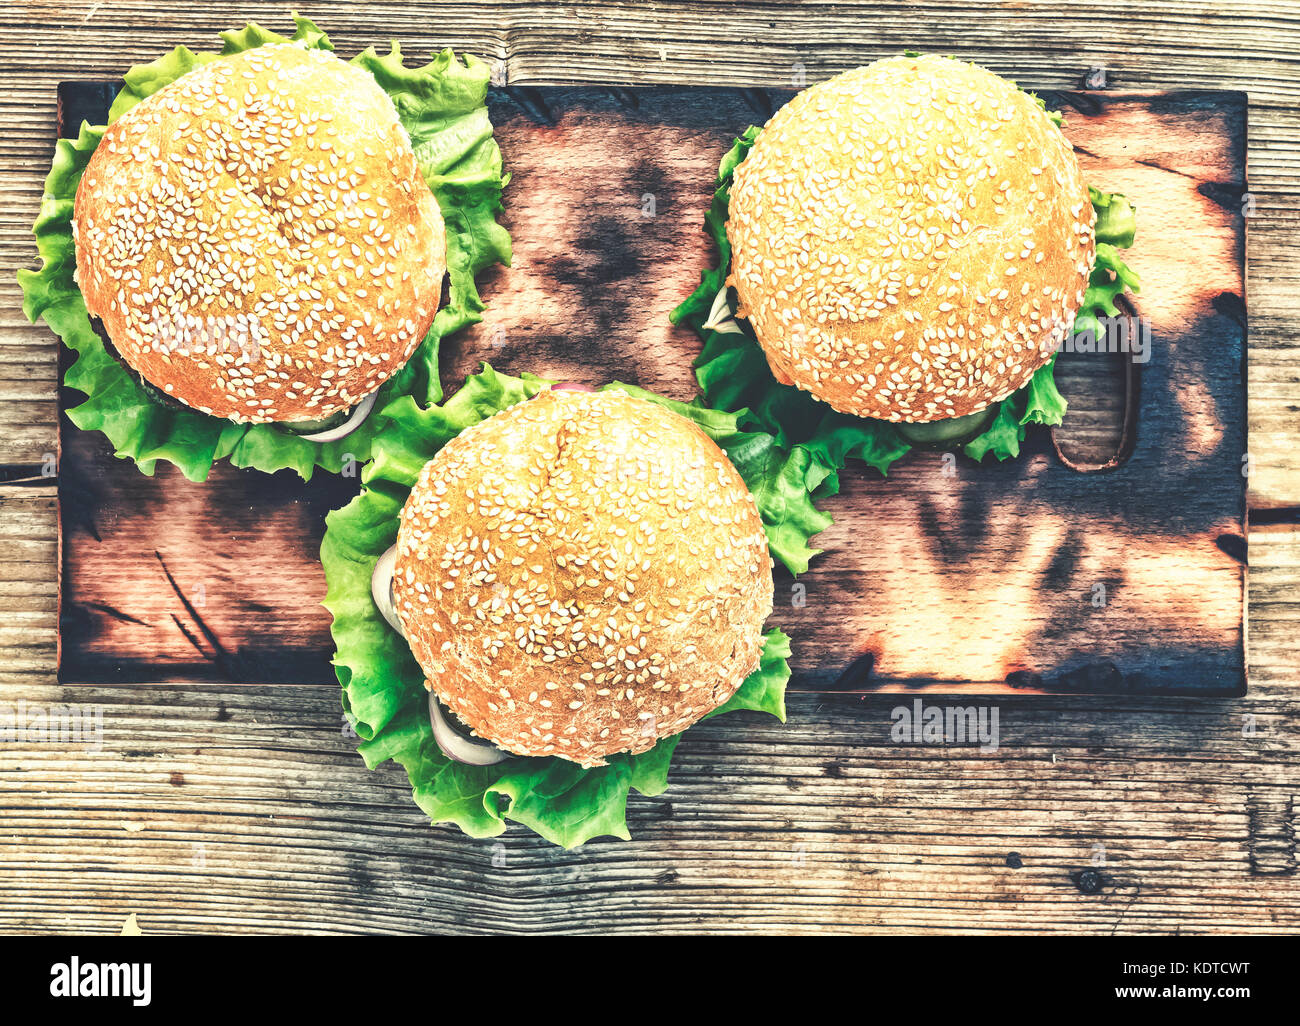 Hamburger on a wooden table. Rustic style, top view Stock Photo